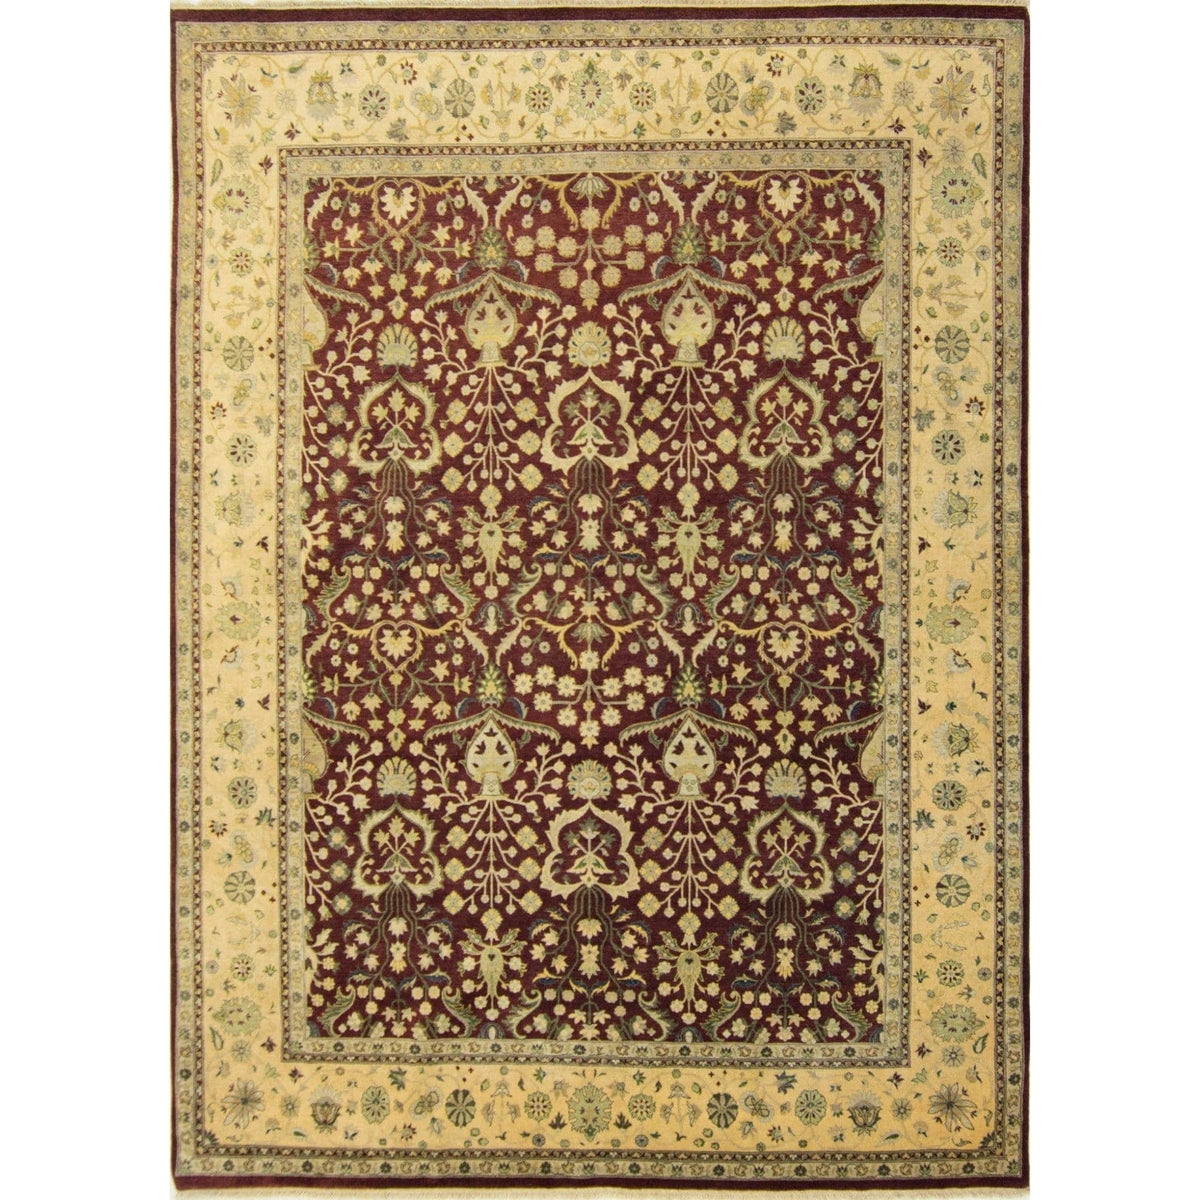 Persian Persian-Rug | House-of-Haghi | NewMarket | Auckland | NZ | Handmade Persian Rugs | Hand Knotted Persian Rugs